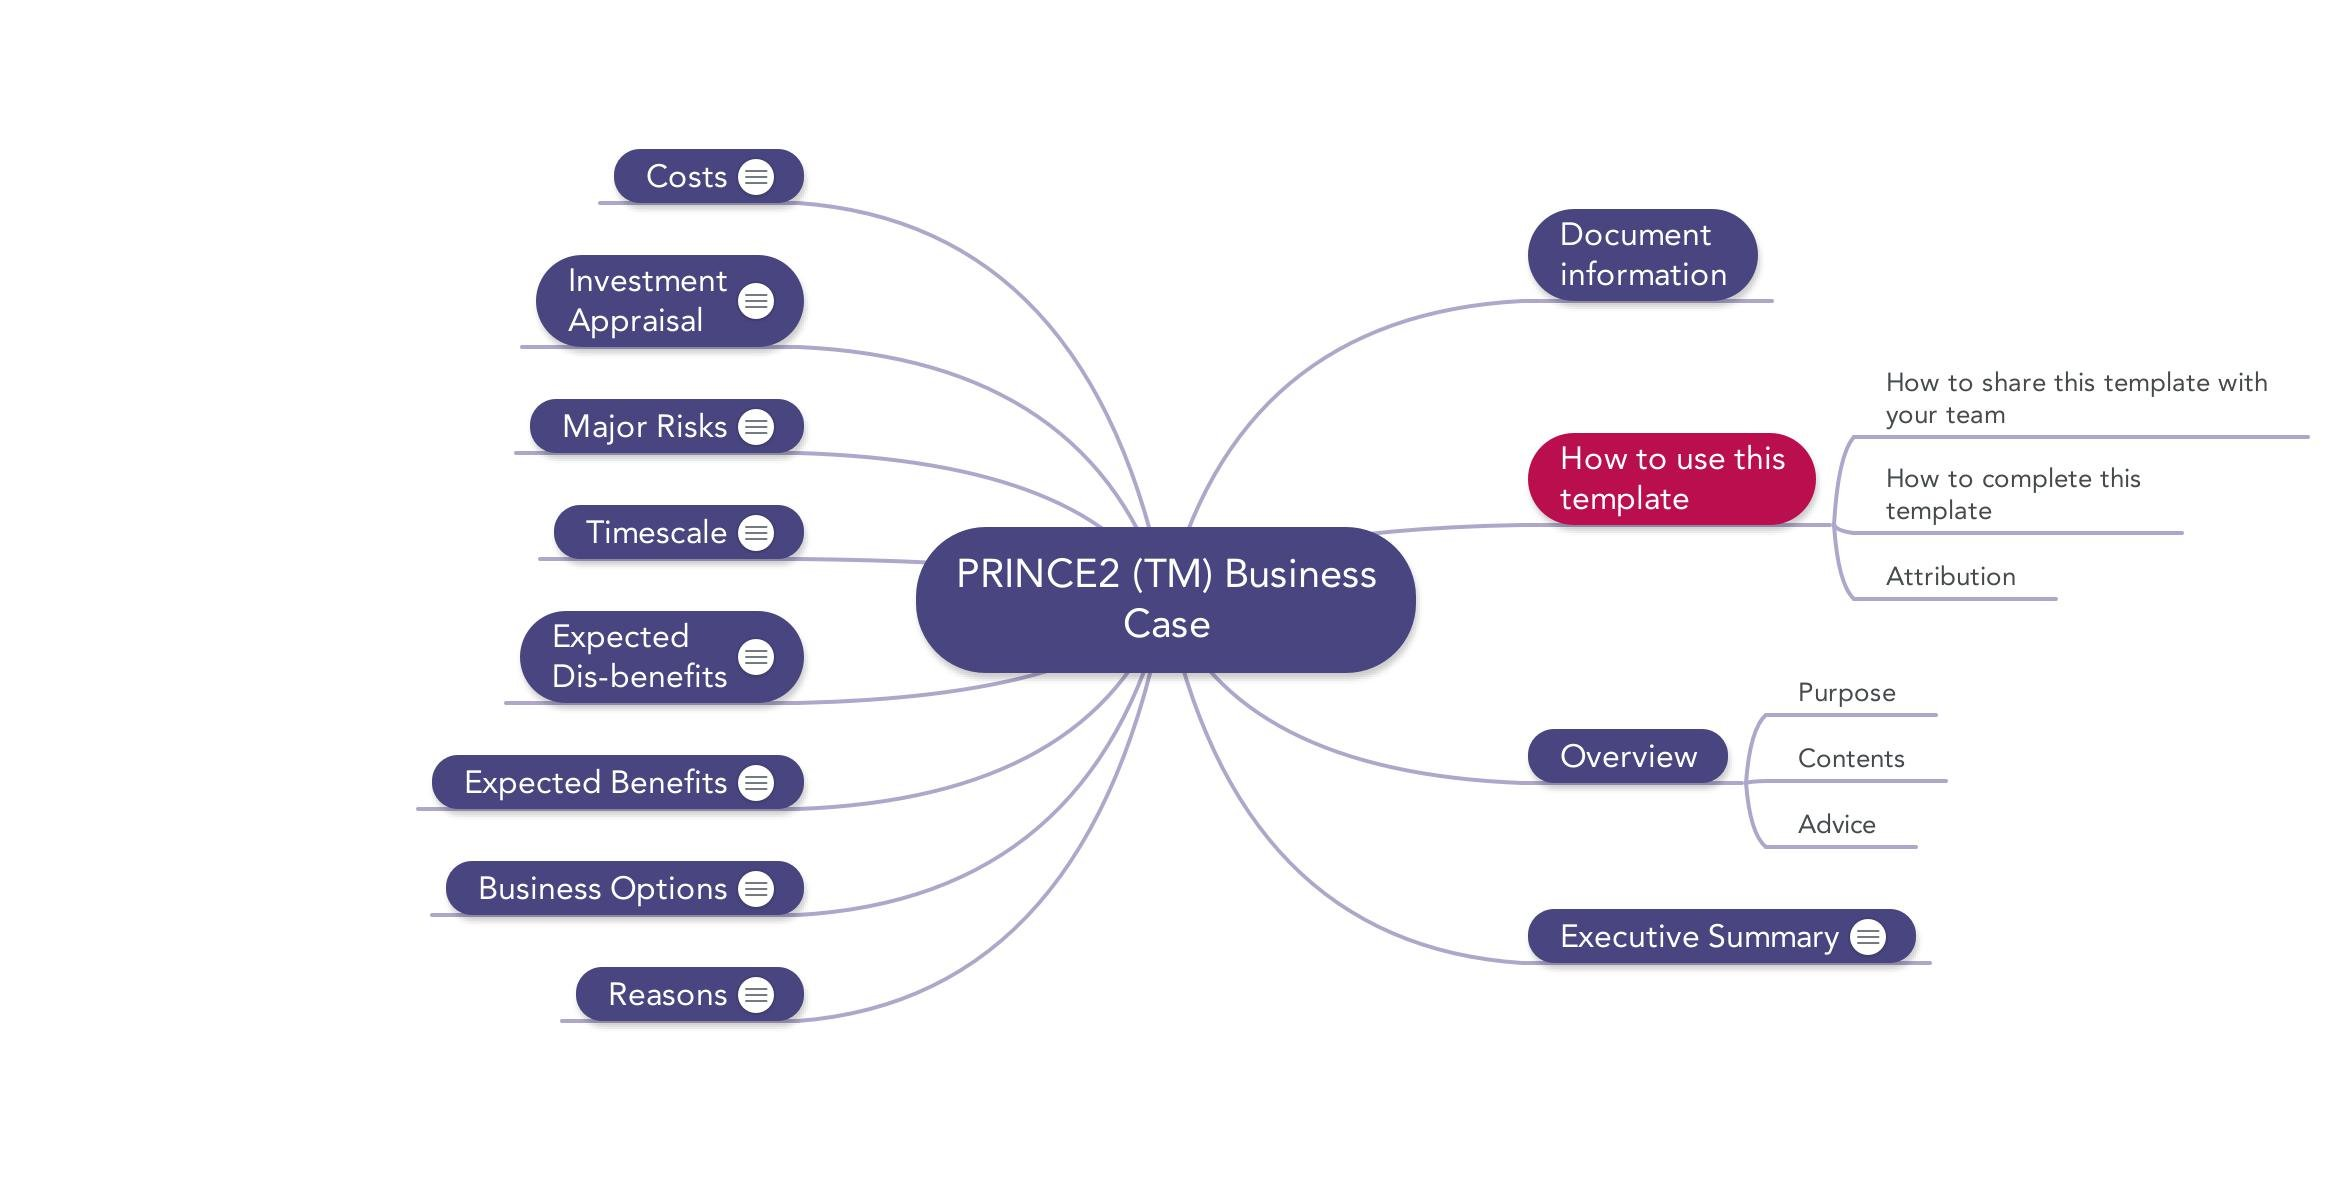 Prince2 business case download template prince2 business case accmission Gallery